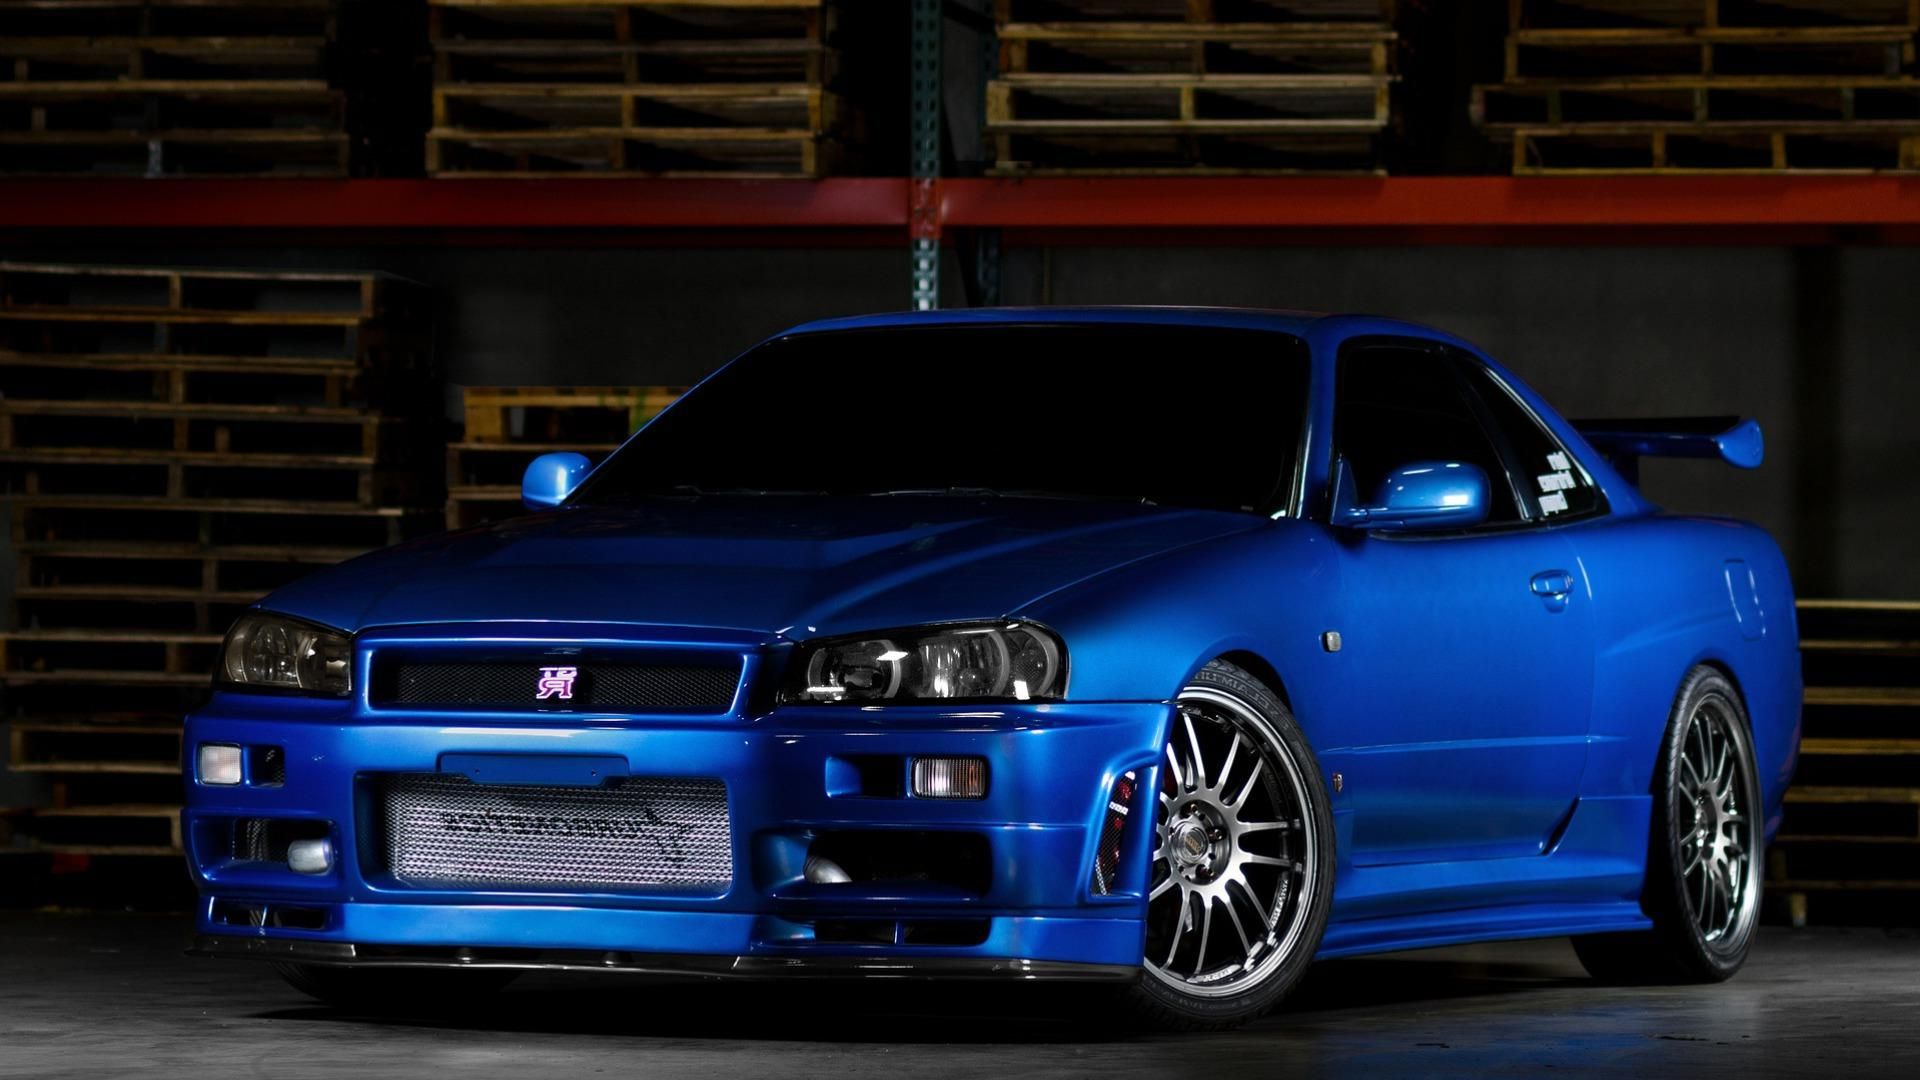 Nissan Skyline Gtr R34 Desktop Hd Wallpapers Jdm Pinterest